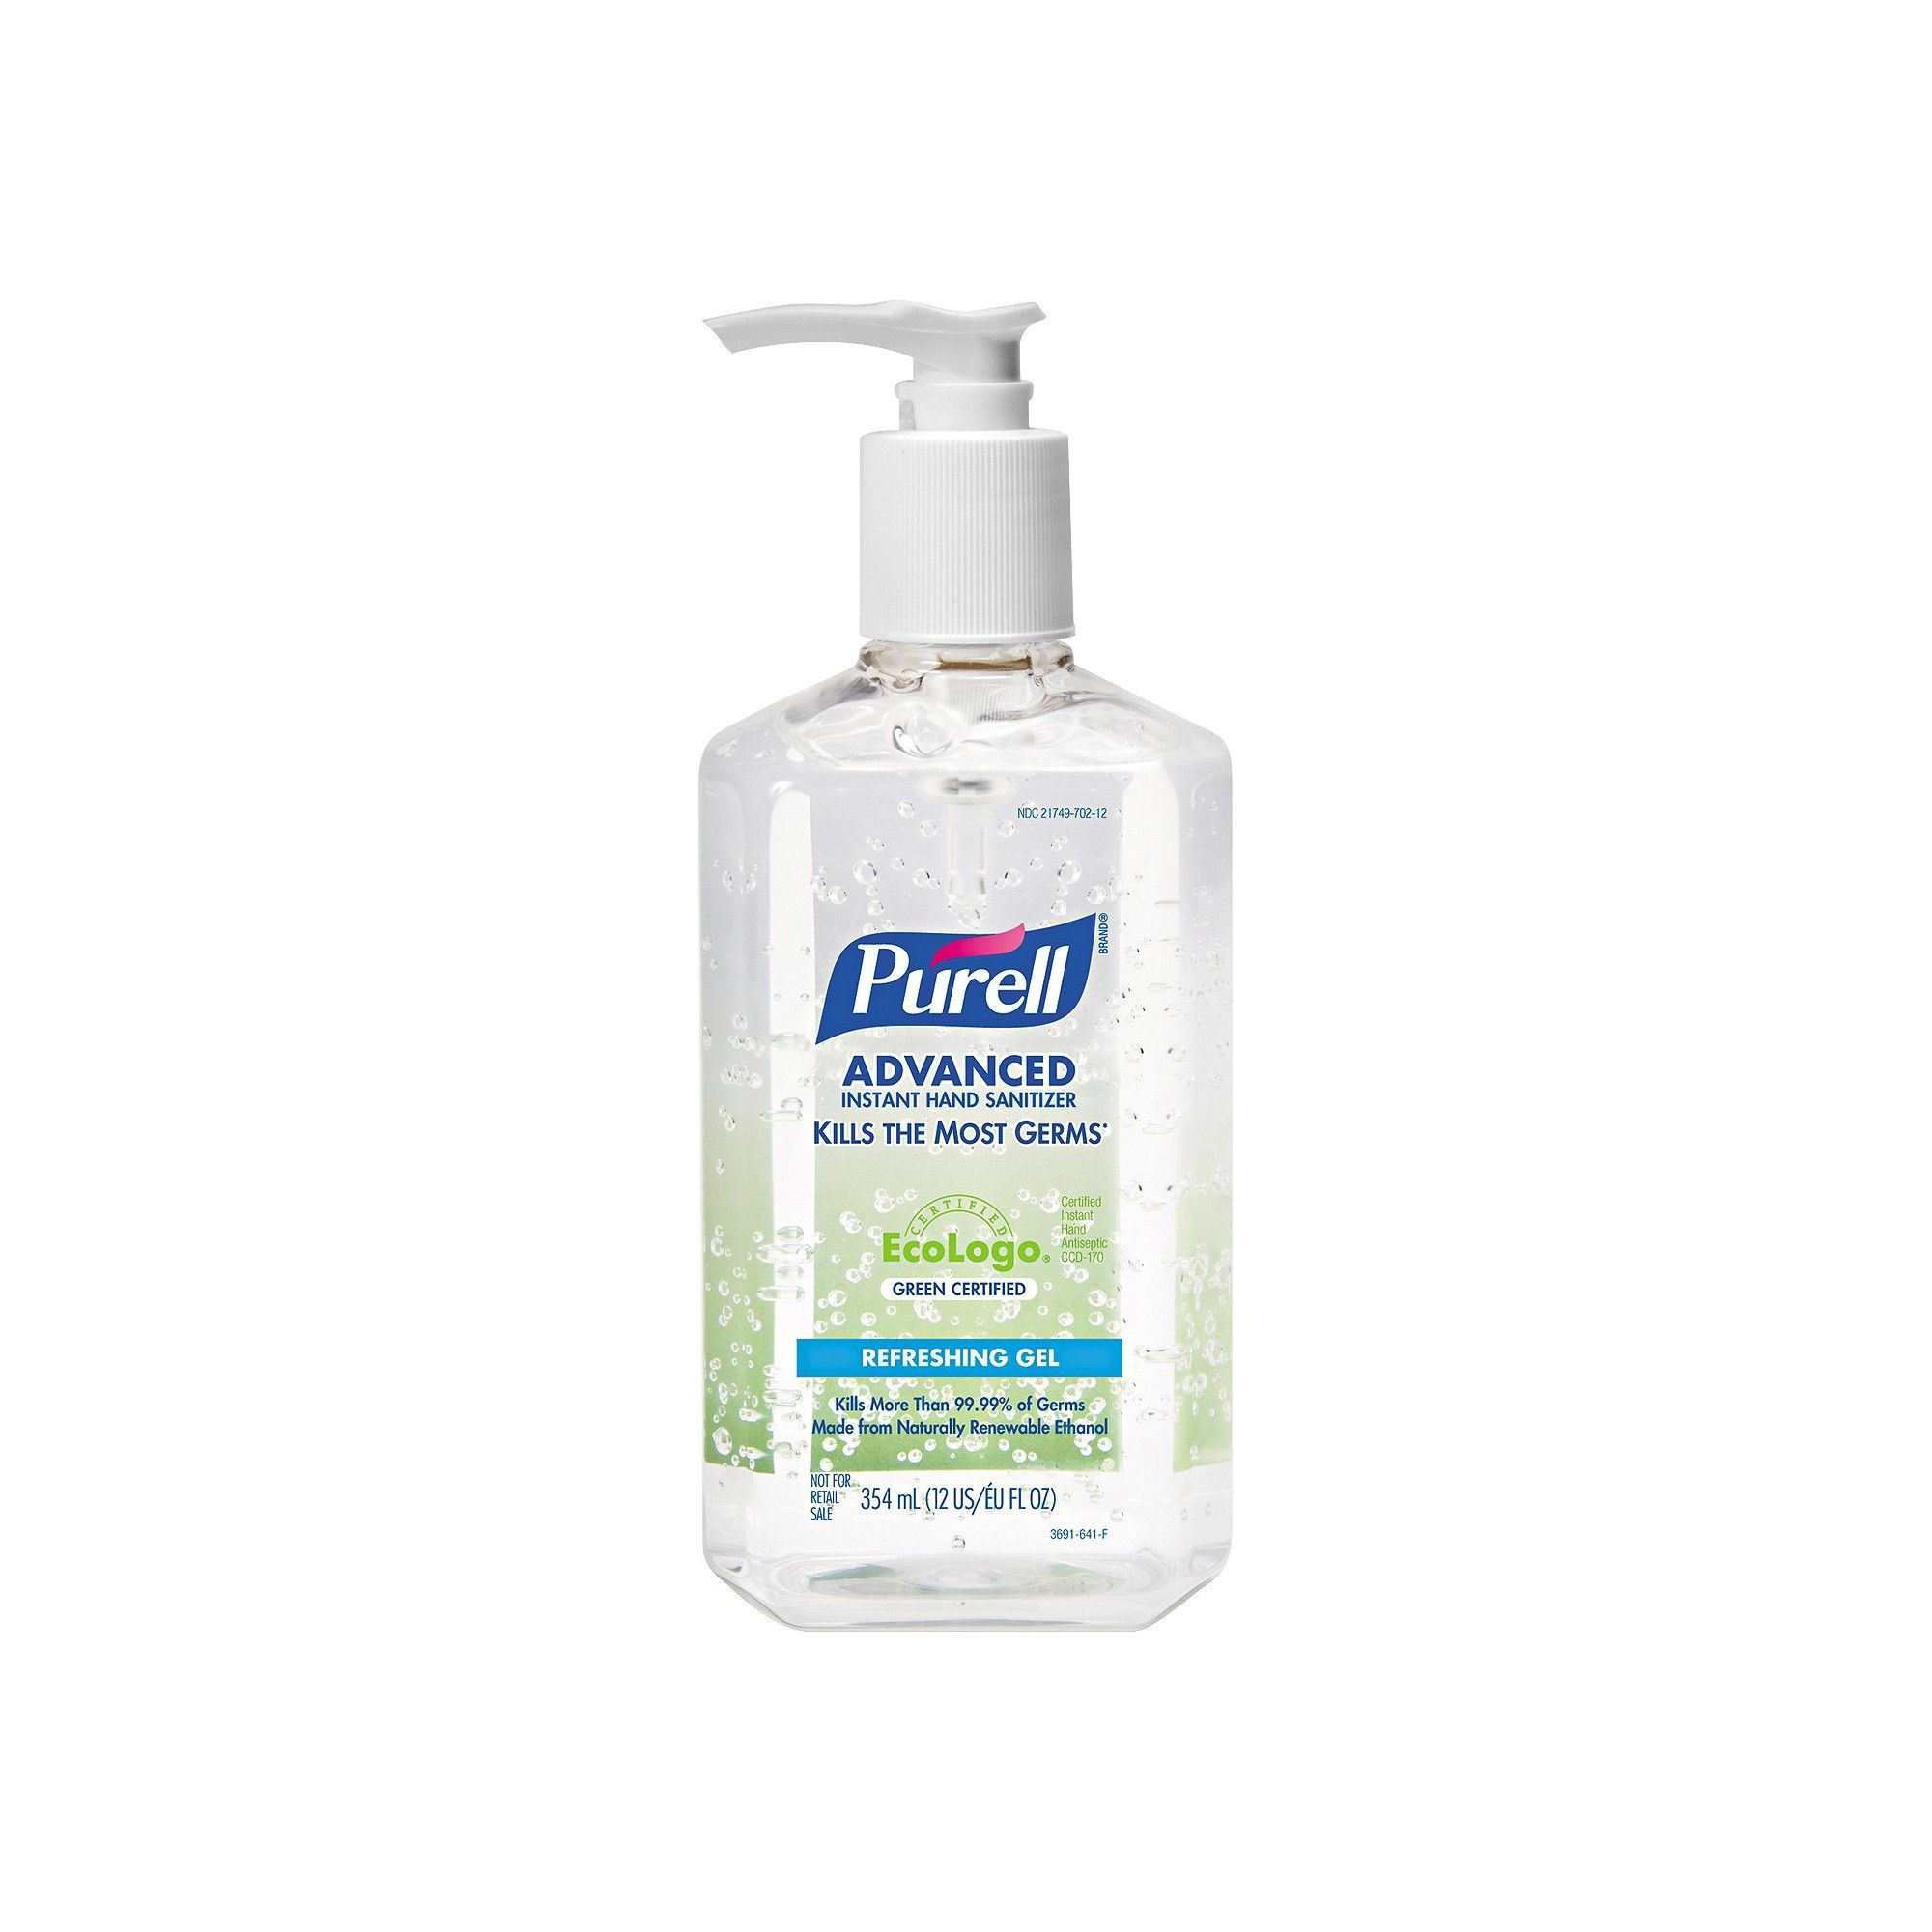 Purell Unscented Hand Sanitizer Products Hand Sanitizer Hands